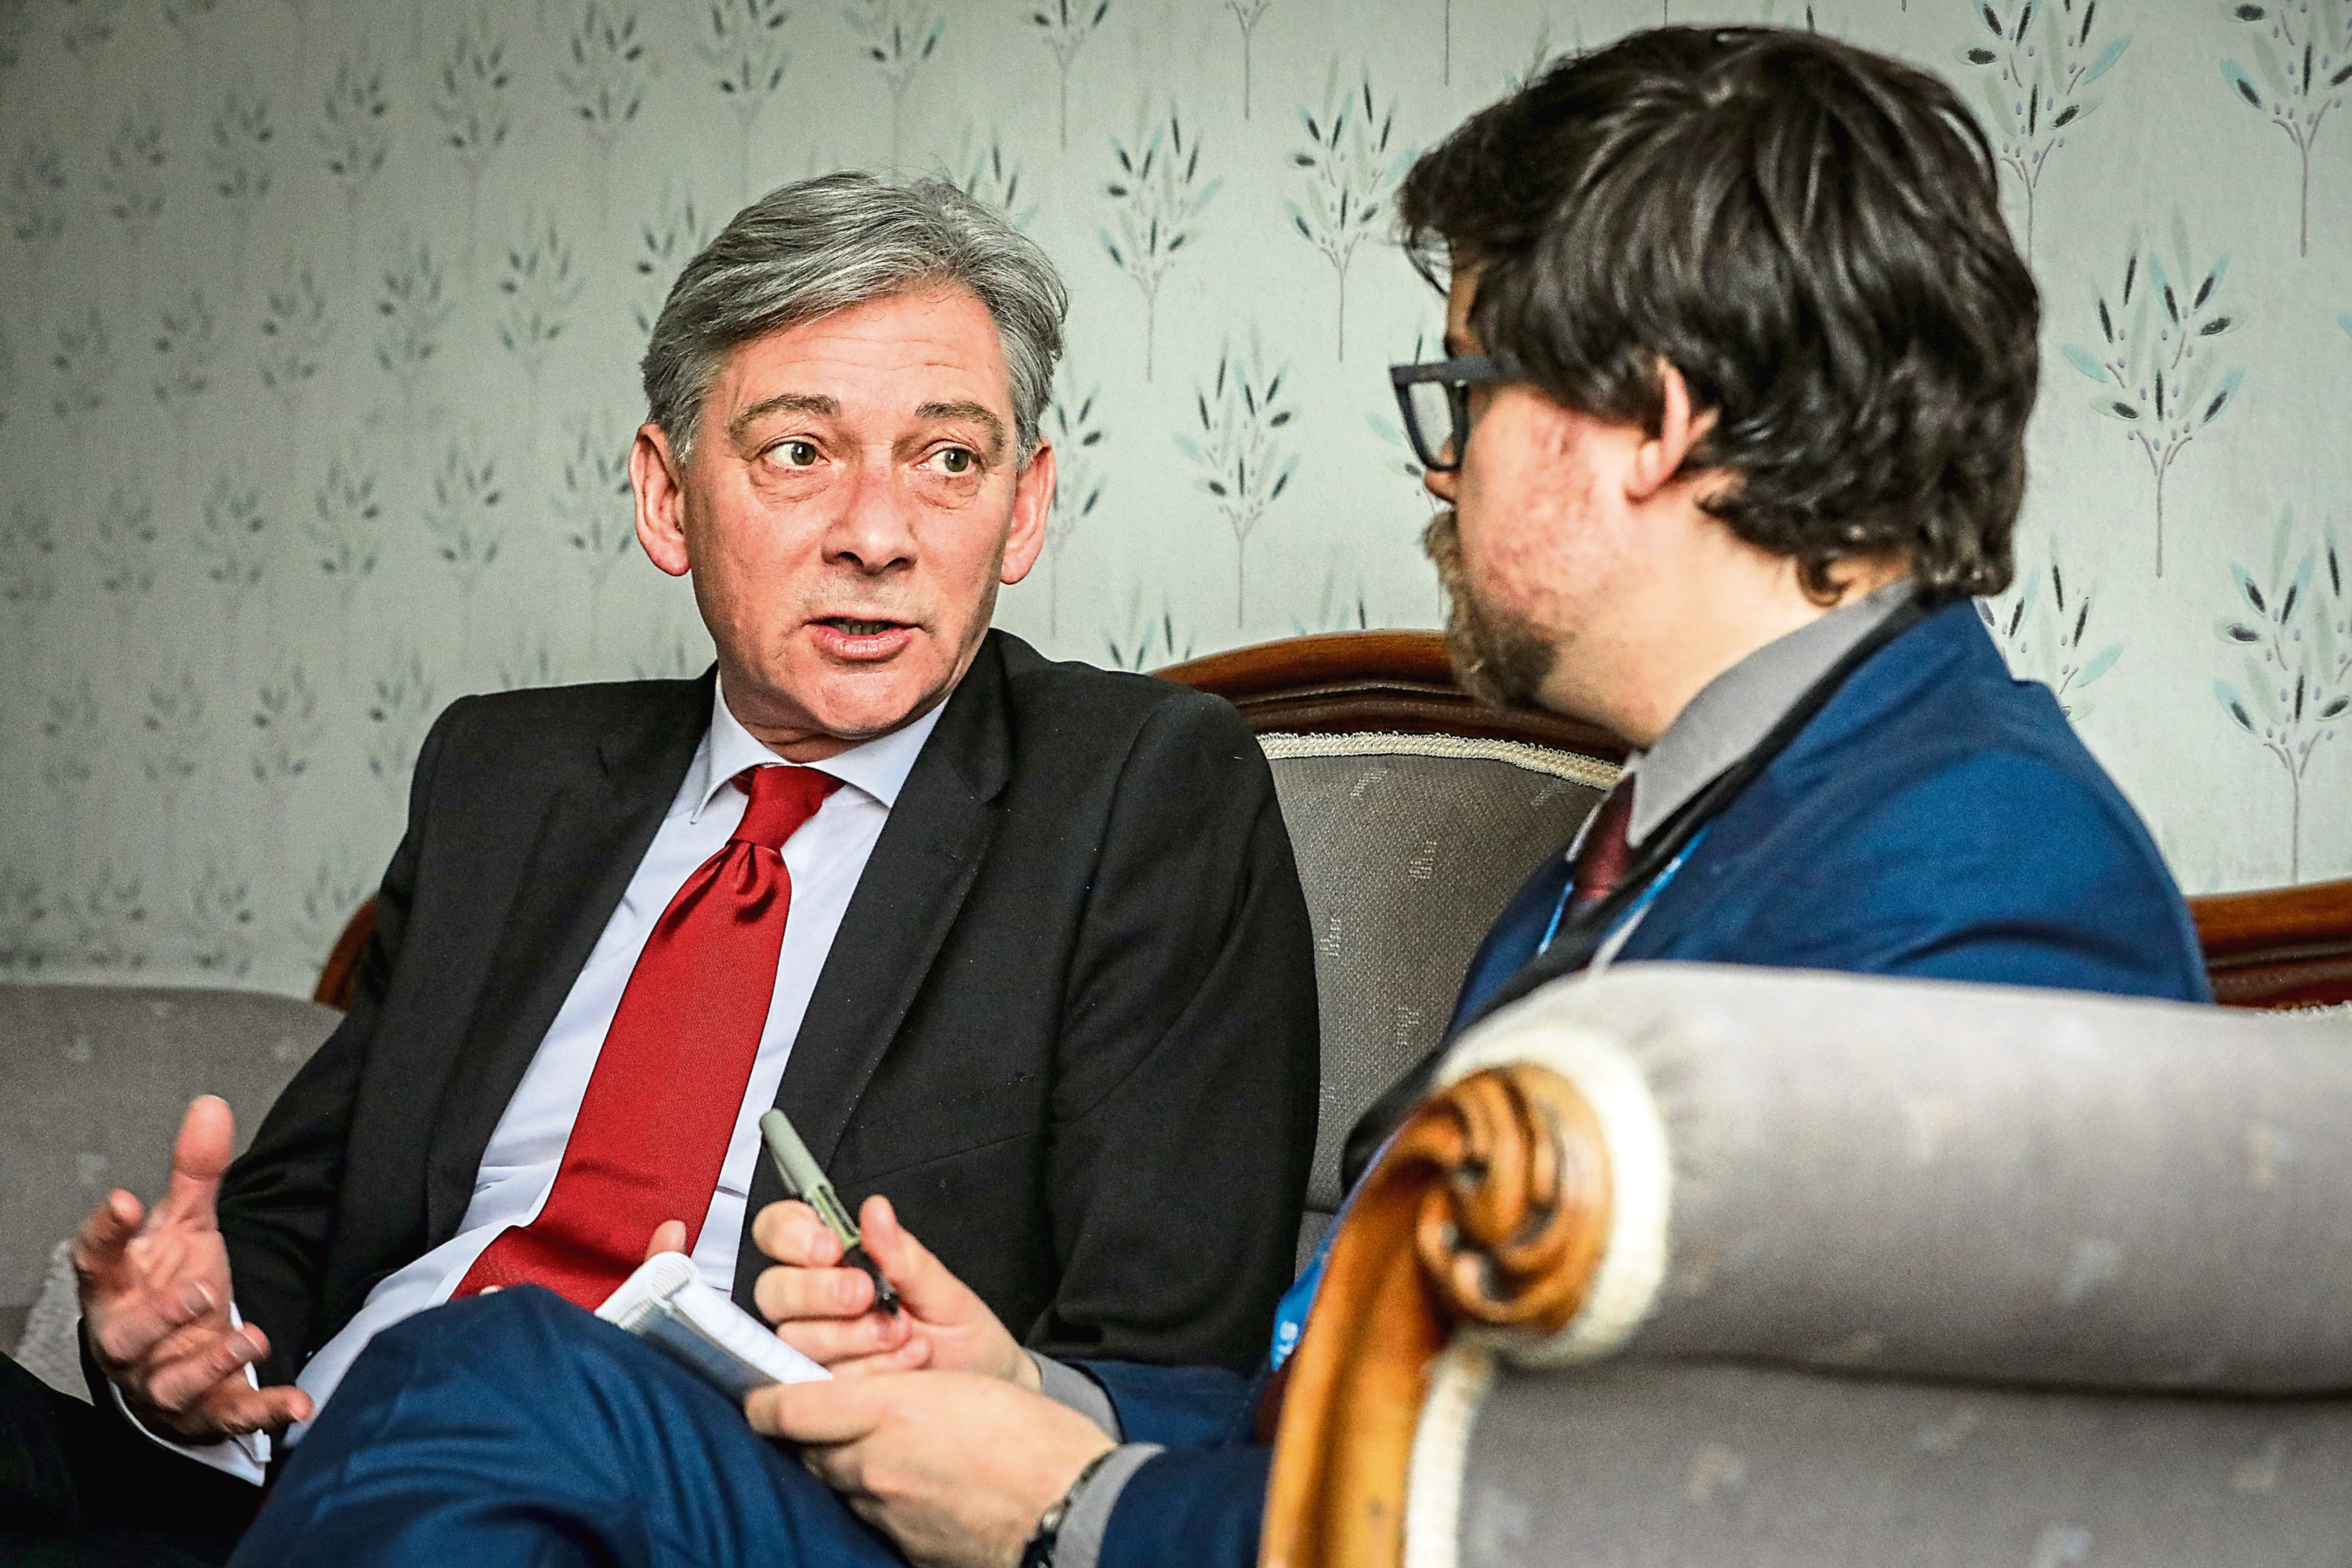 Tele News, Jon Brady story, CR0006899 . Tele interview with Richard Leonard, Scottish Labour leader, to speak about the latest jobs issues in Dundee (Michelin, McGill) and his personal intervention in the cases of families of Carseview suicide victims such as Dale Thomson and David Ramsay. Pic shows; Jon Brady interviewing Richard Leonard, Scottish Labour Leader at Caird Hall, DUndee. Sunday, 10th March, 2019. Kris Miller/DCT Media